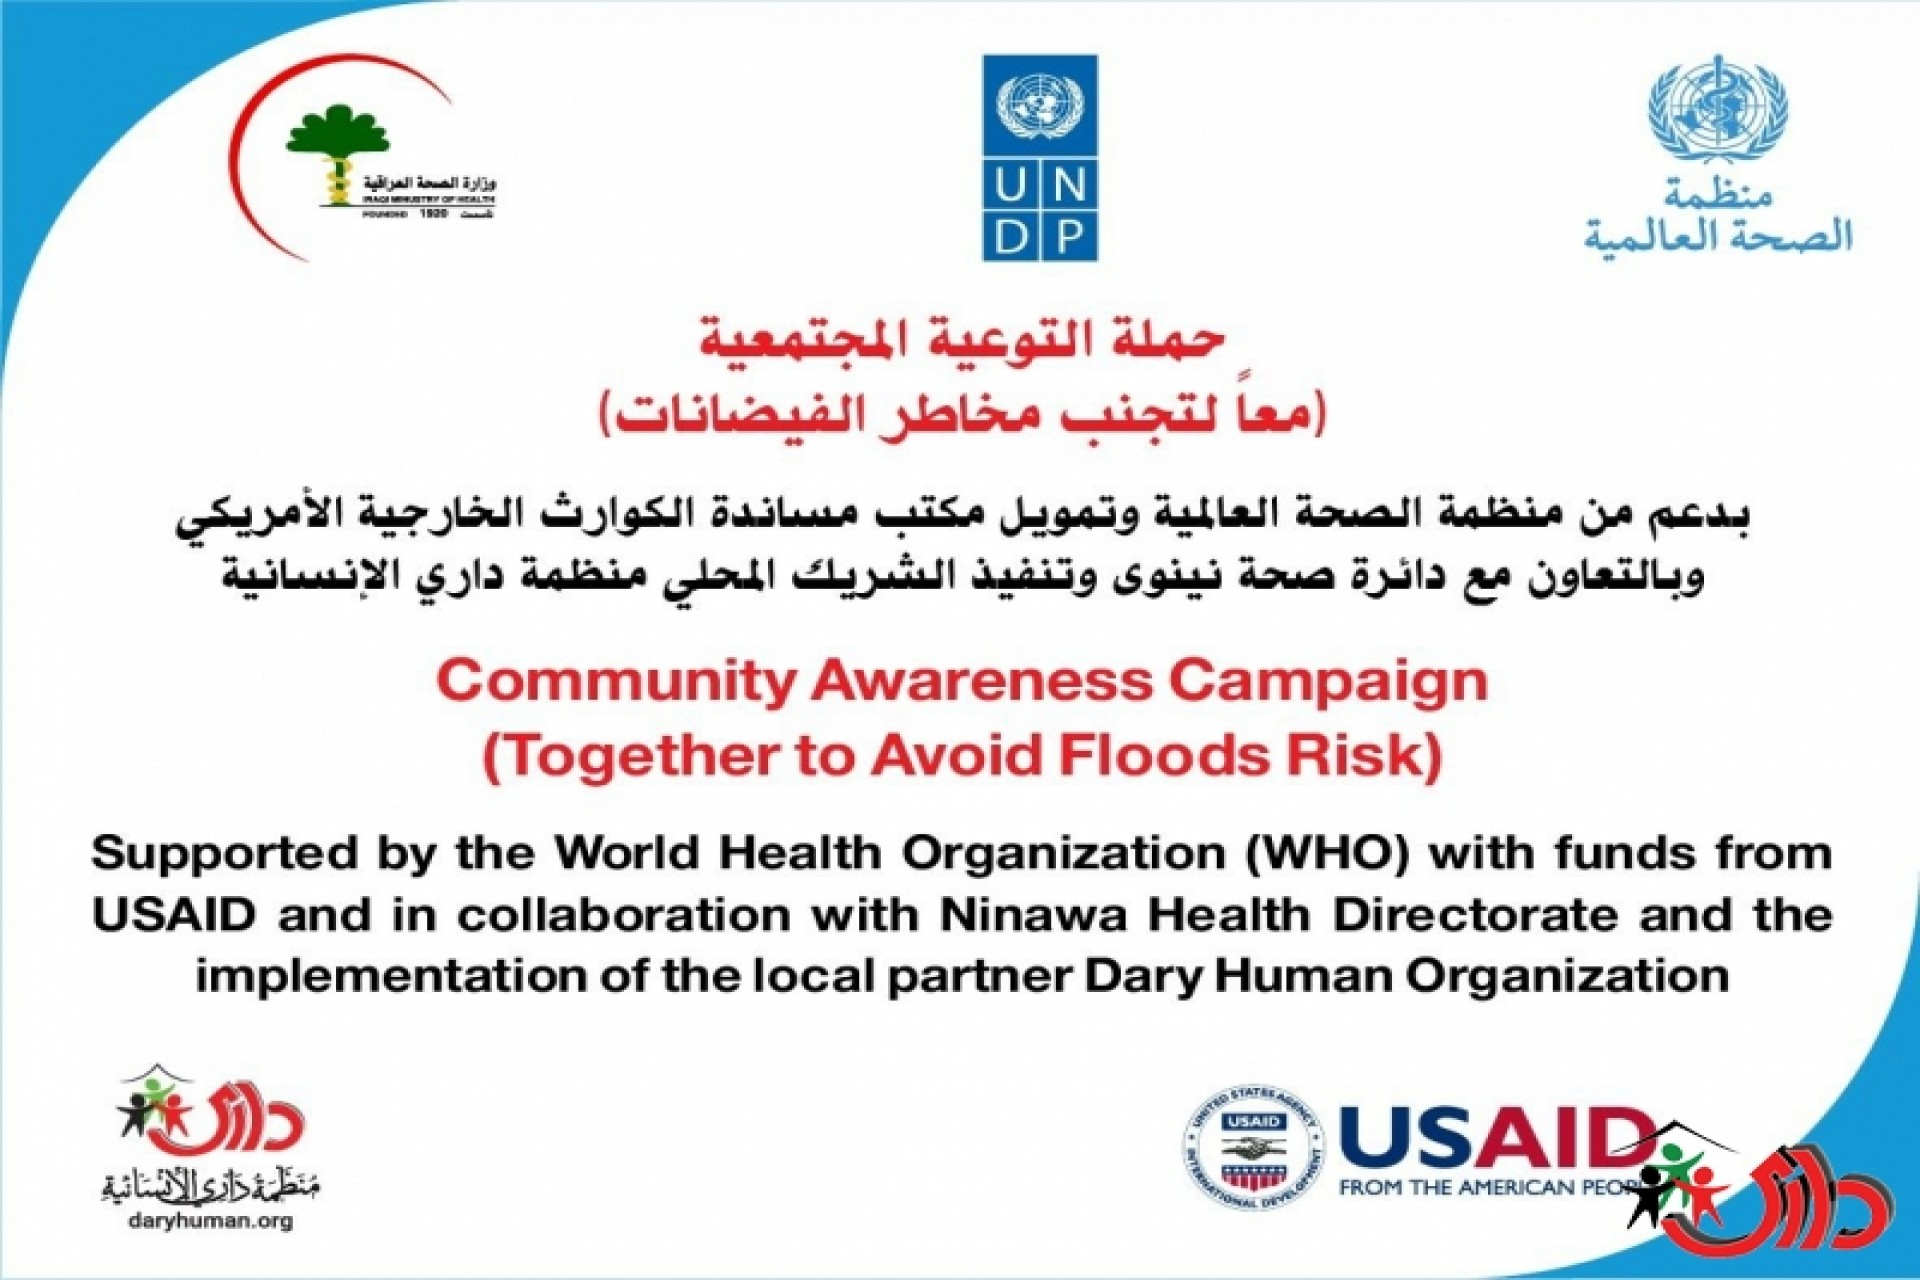 DARY ORG. IS IMPLEMENTING AN AWARENESS PROGRAM FOR THE PREVENTION OF FLOODS AND TORRENTS RISKS WITH THE SUPPORT OF THE WORLD HEALTH ORGANIZATION (WHO).